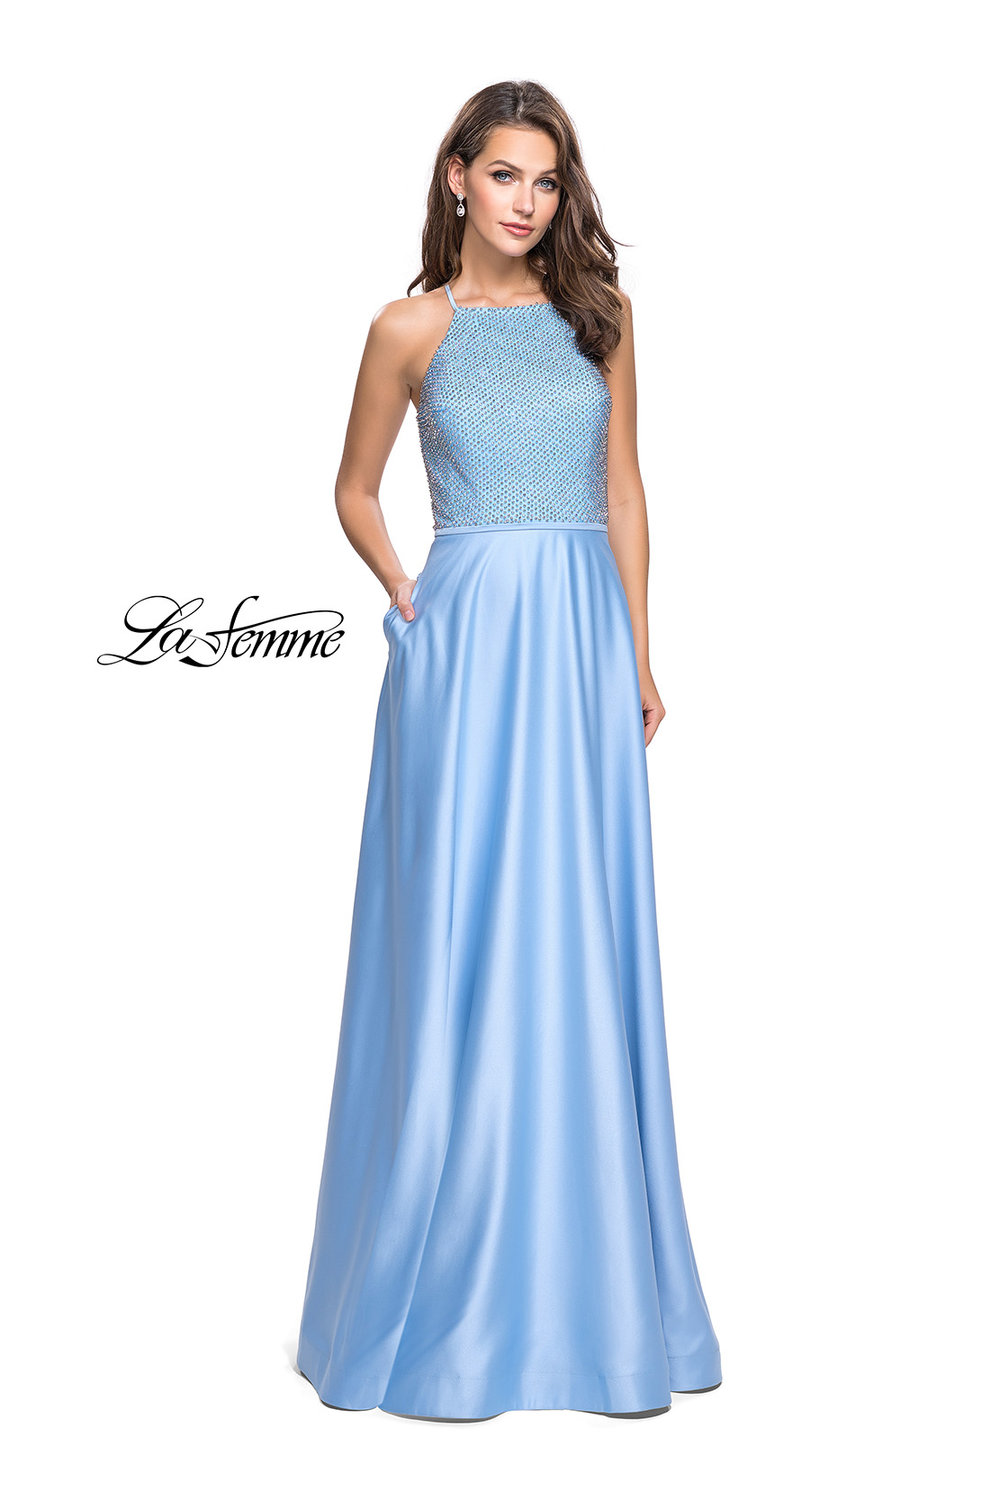 25601_PowderBlue_F.jpg